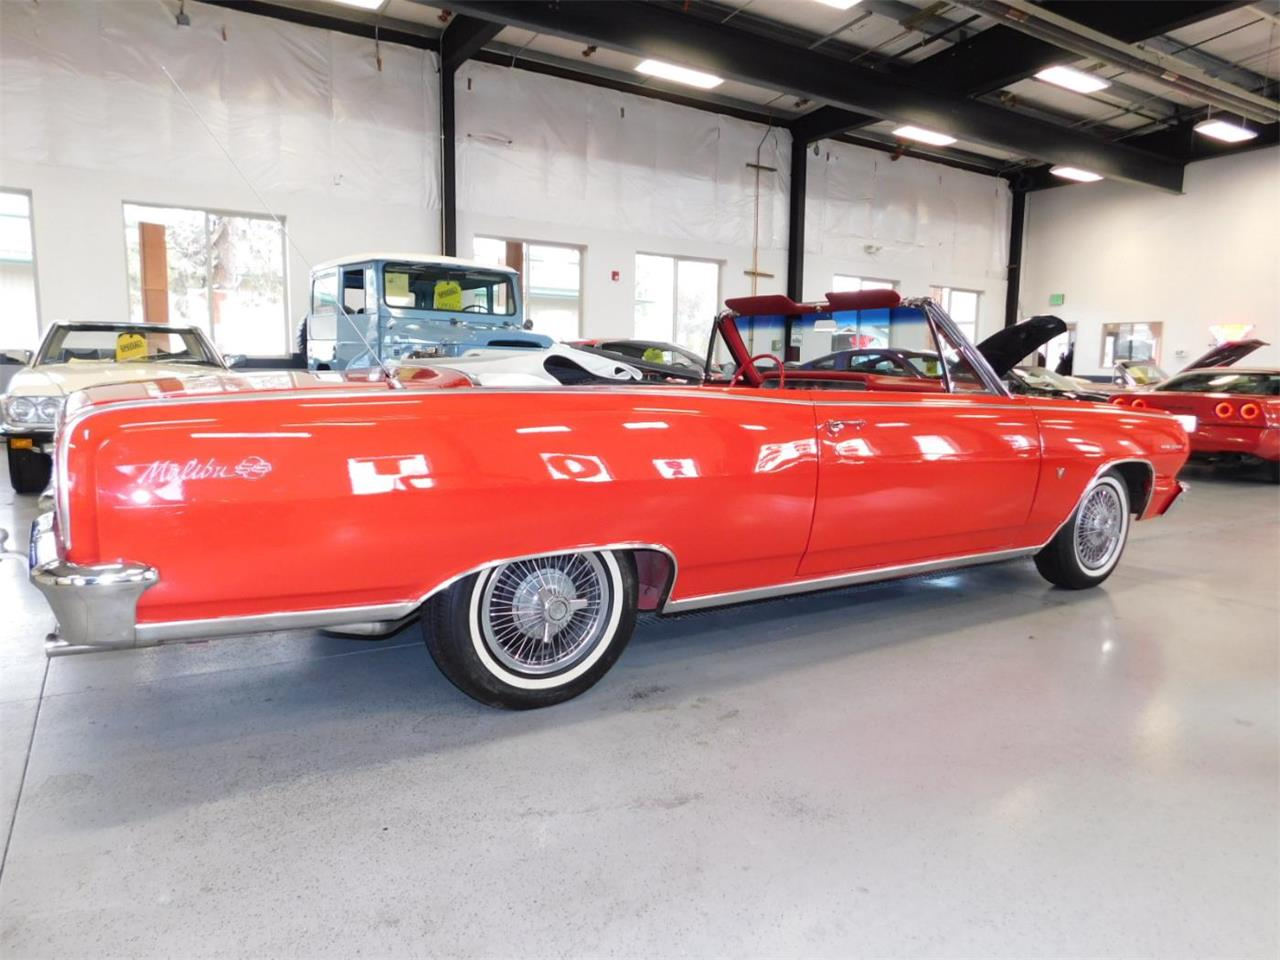 Large Picture of Classic 1964 Malibu SS located in Oregon - $26,500.00 - MBIW